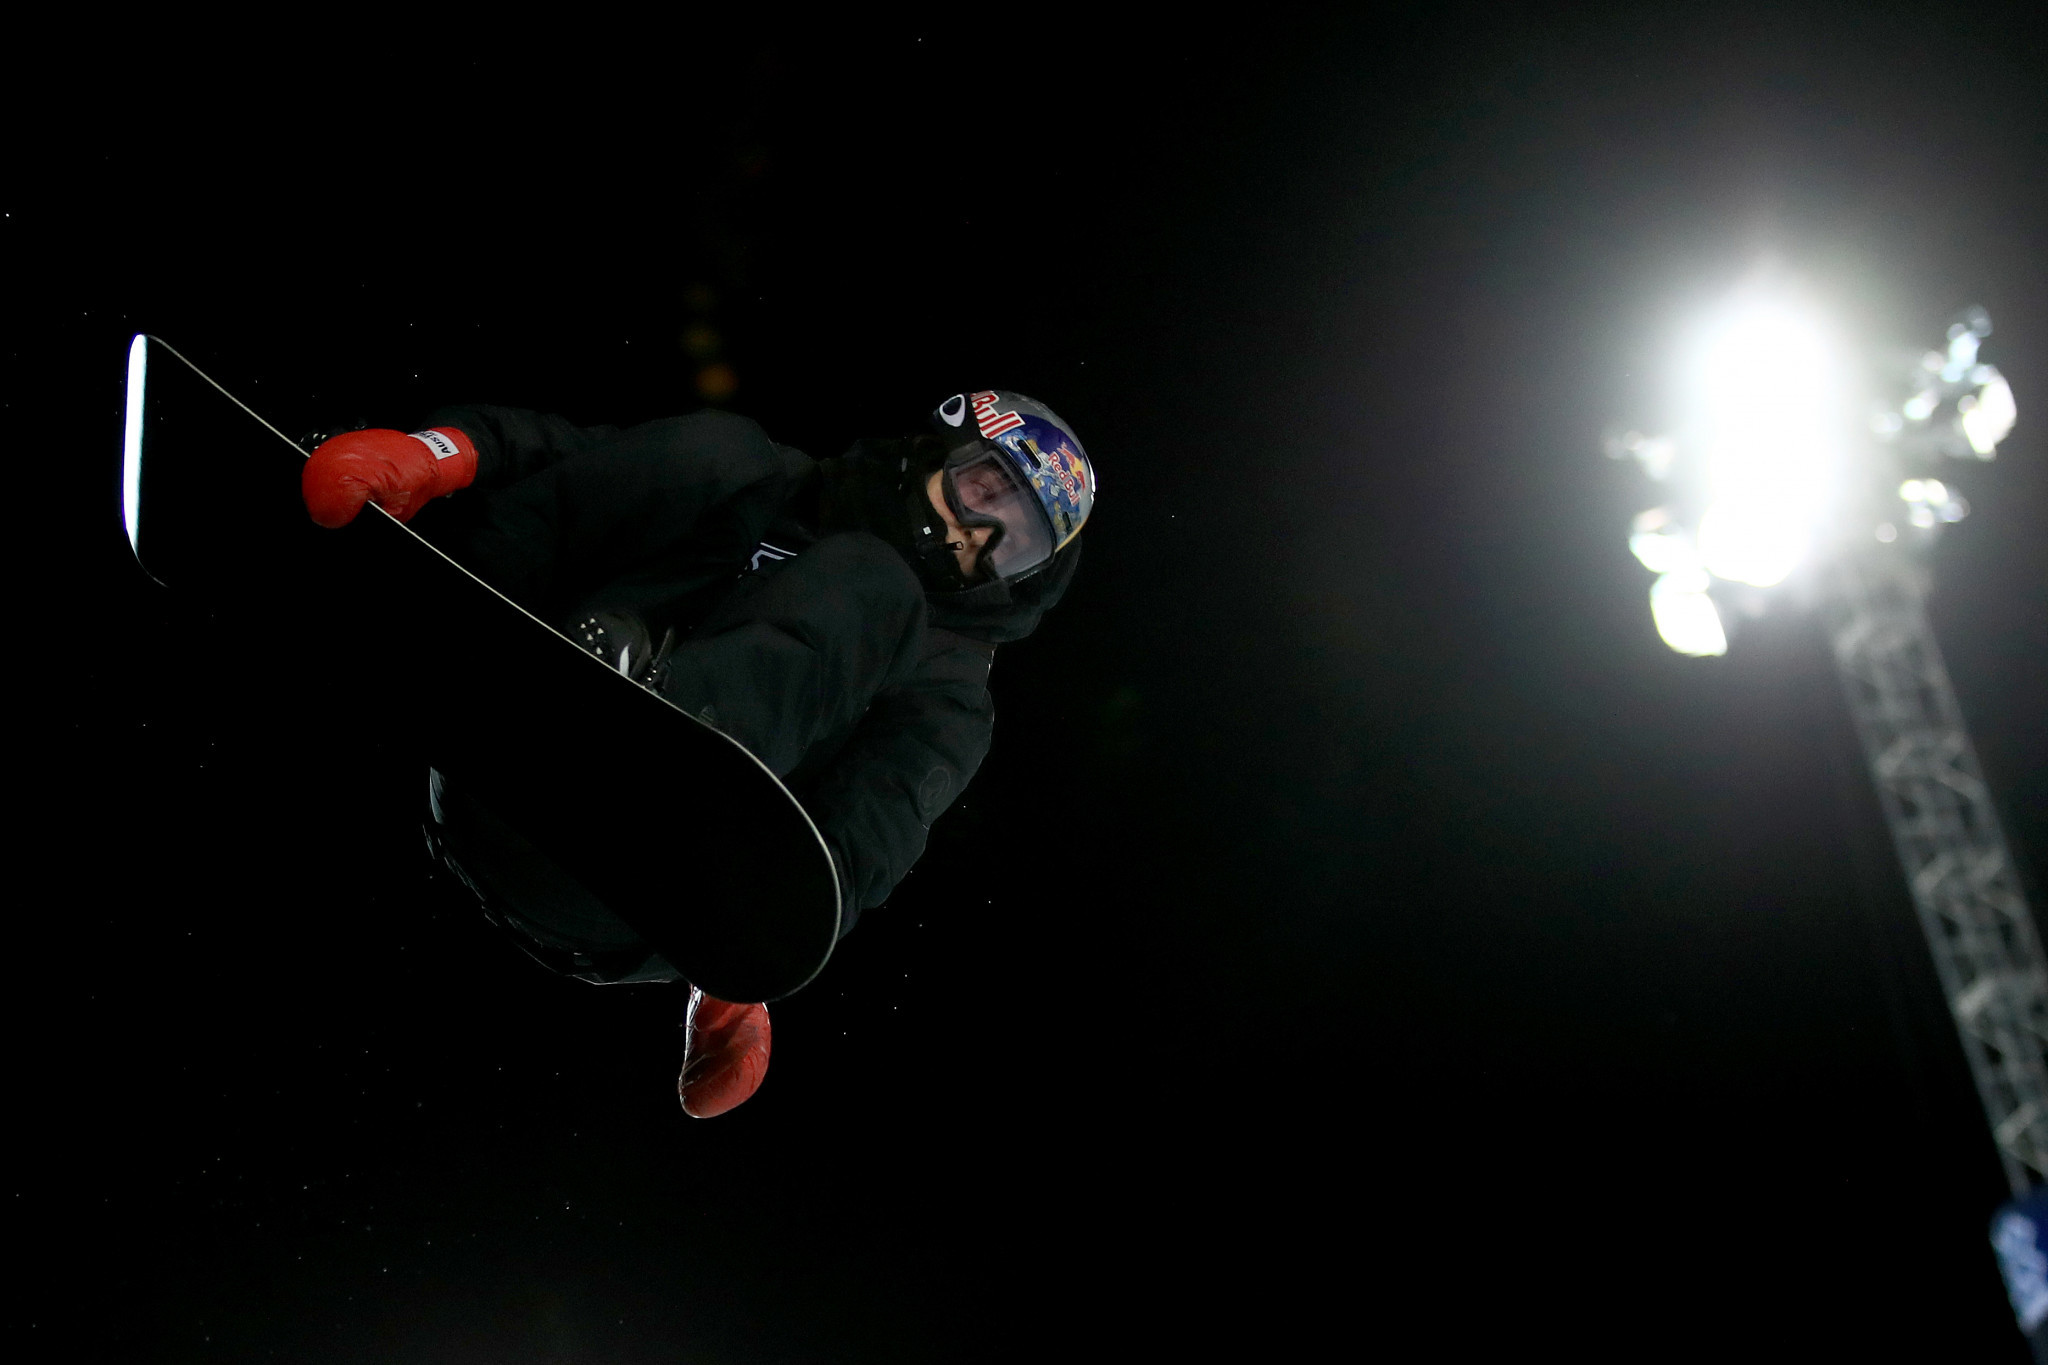 Olympic bronze medallist Scotty James triumphed in the men's snowboard superpipe event ©Getty Images